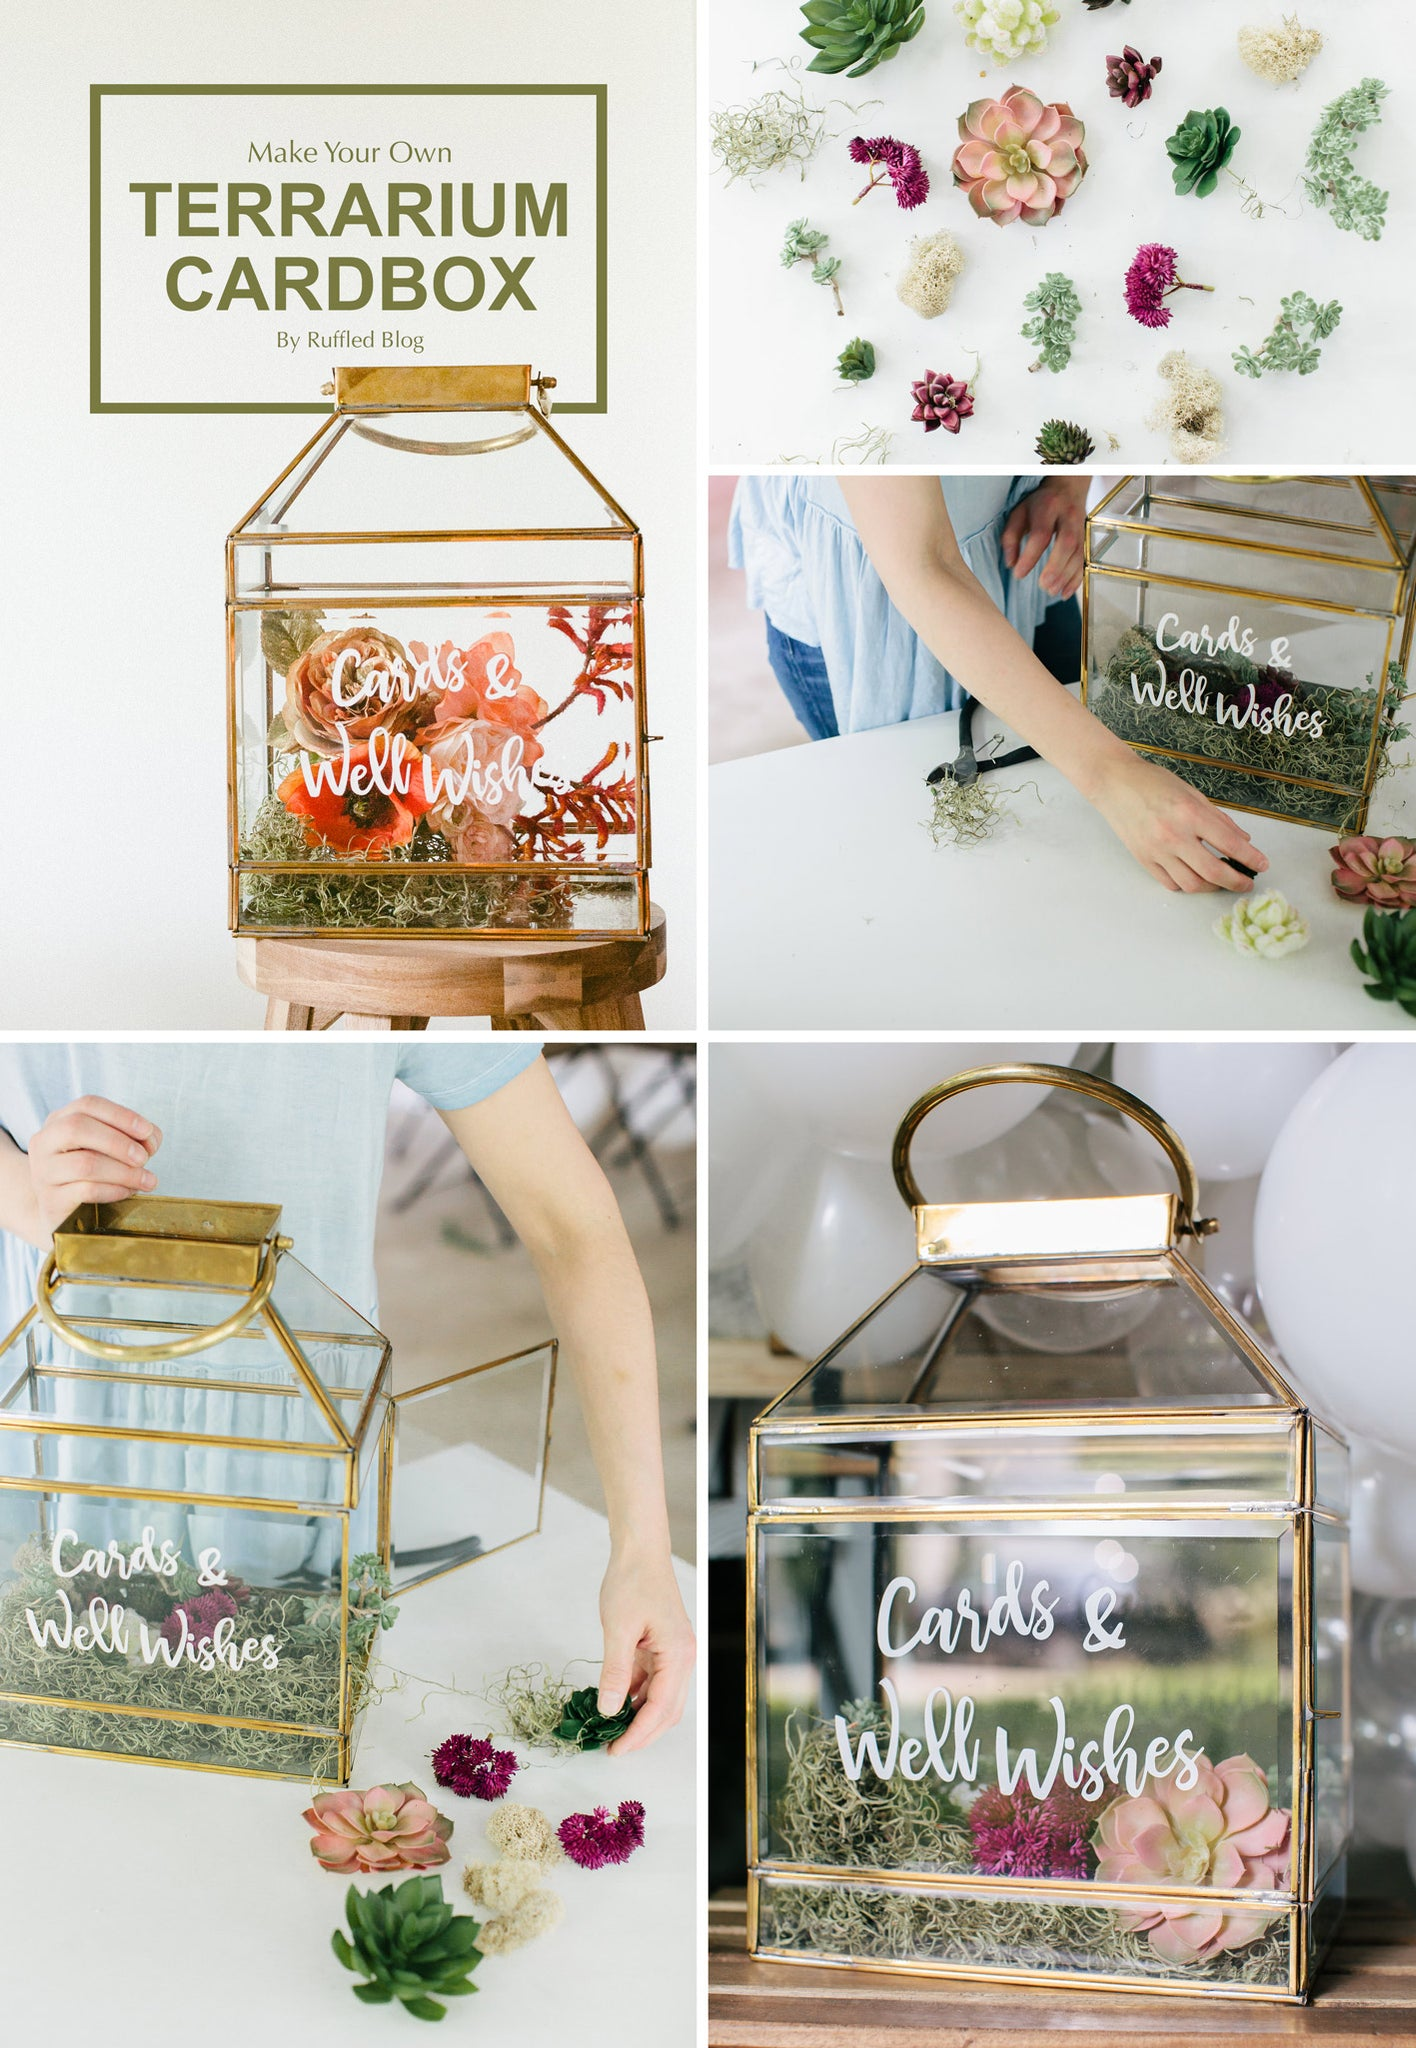 How To Make A Terrarium Cardbox